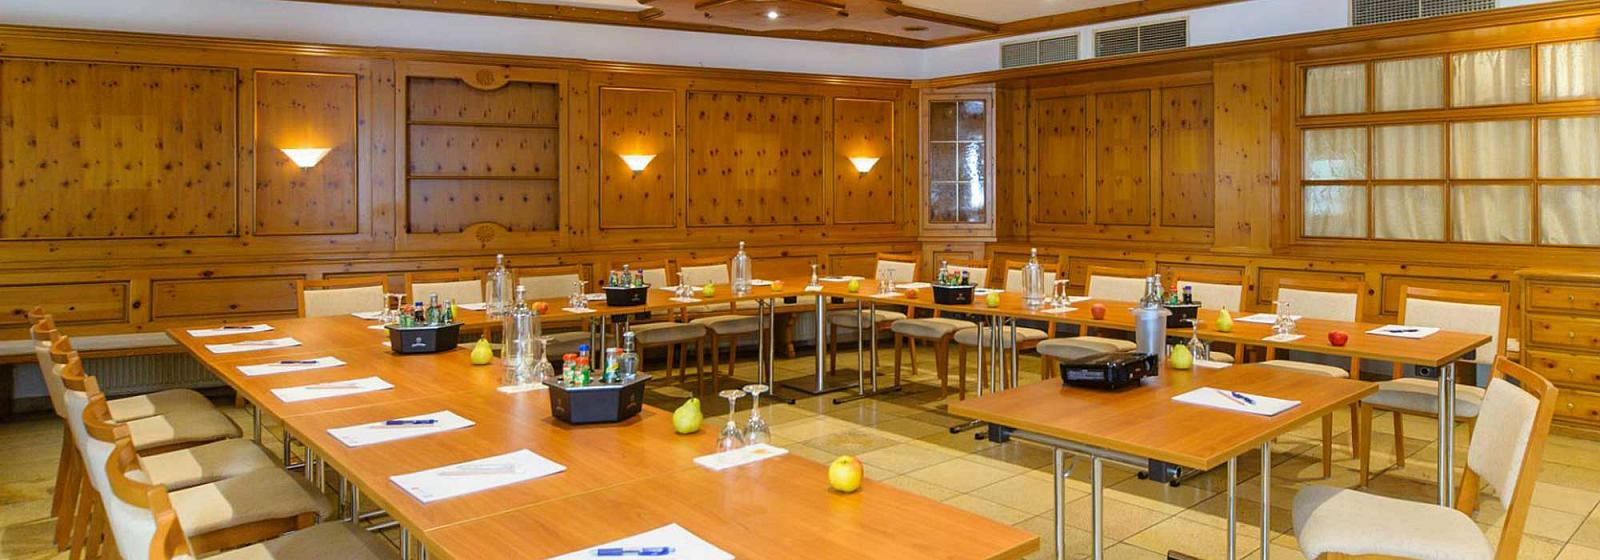 Akzent-Hotel Goldner Stern: Conferences